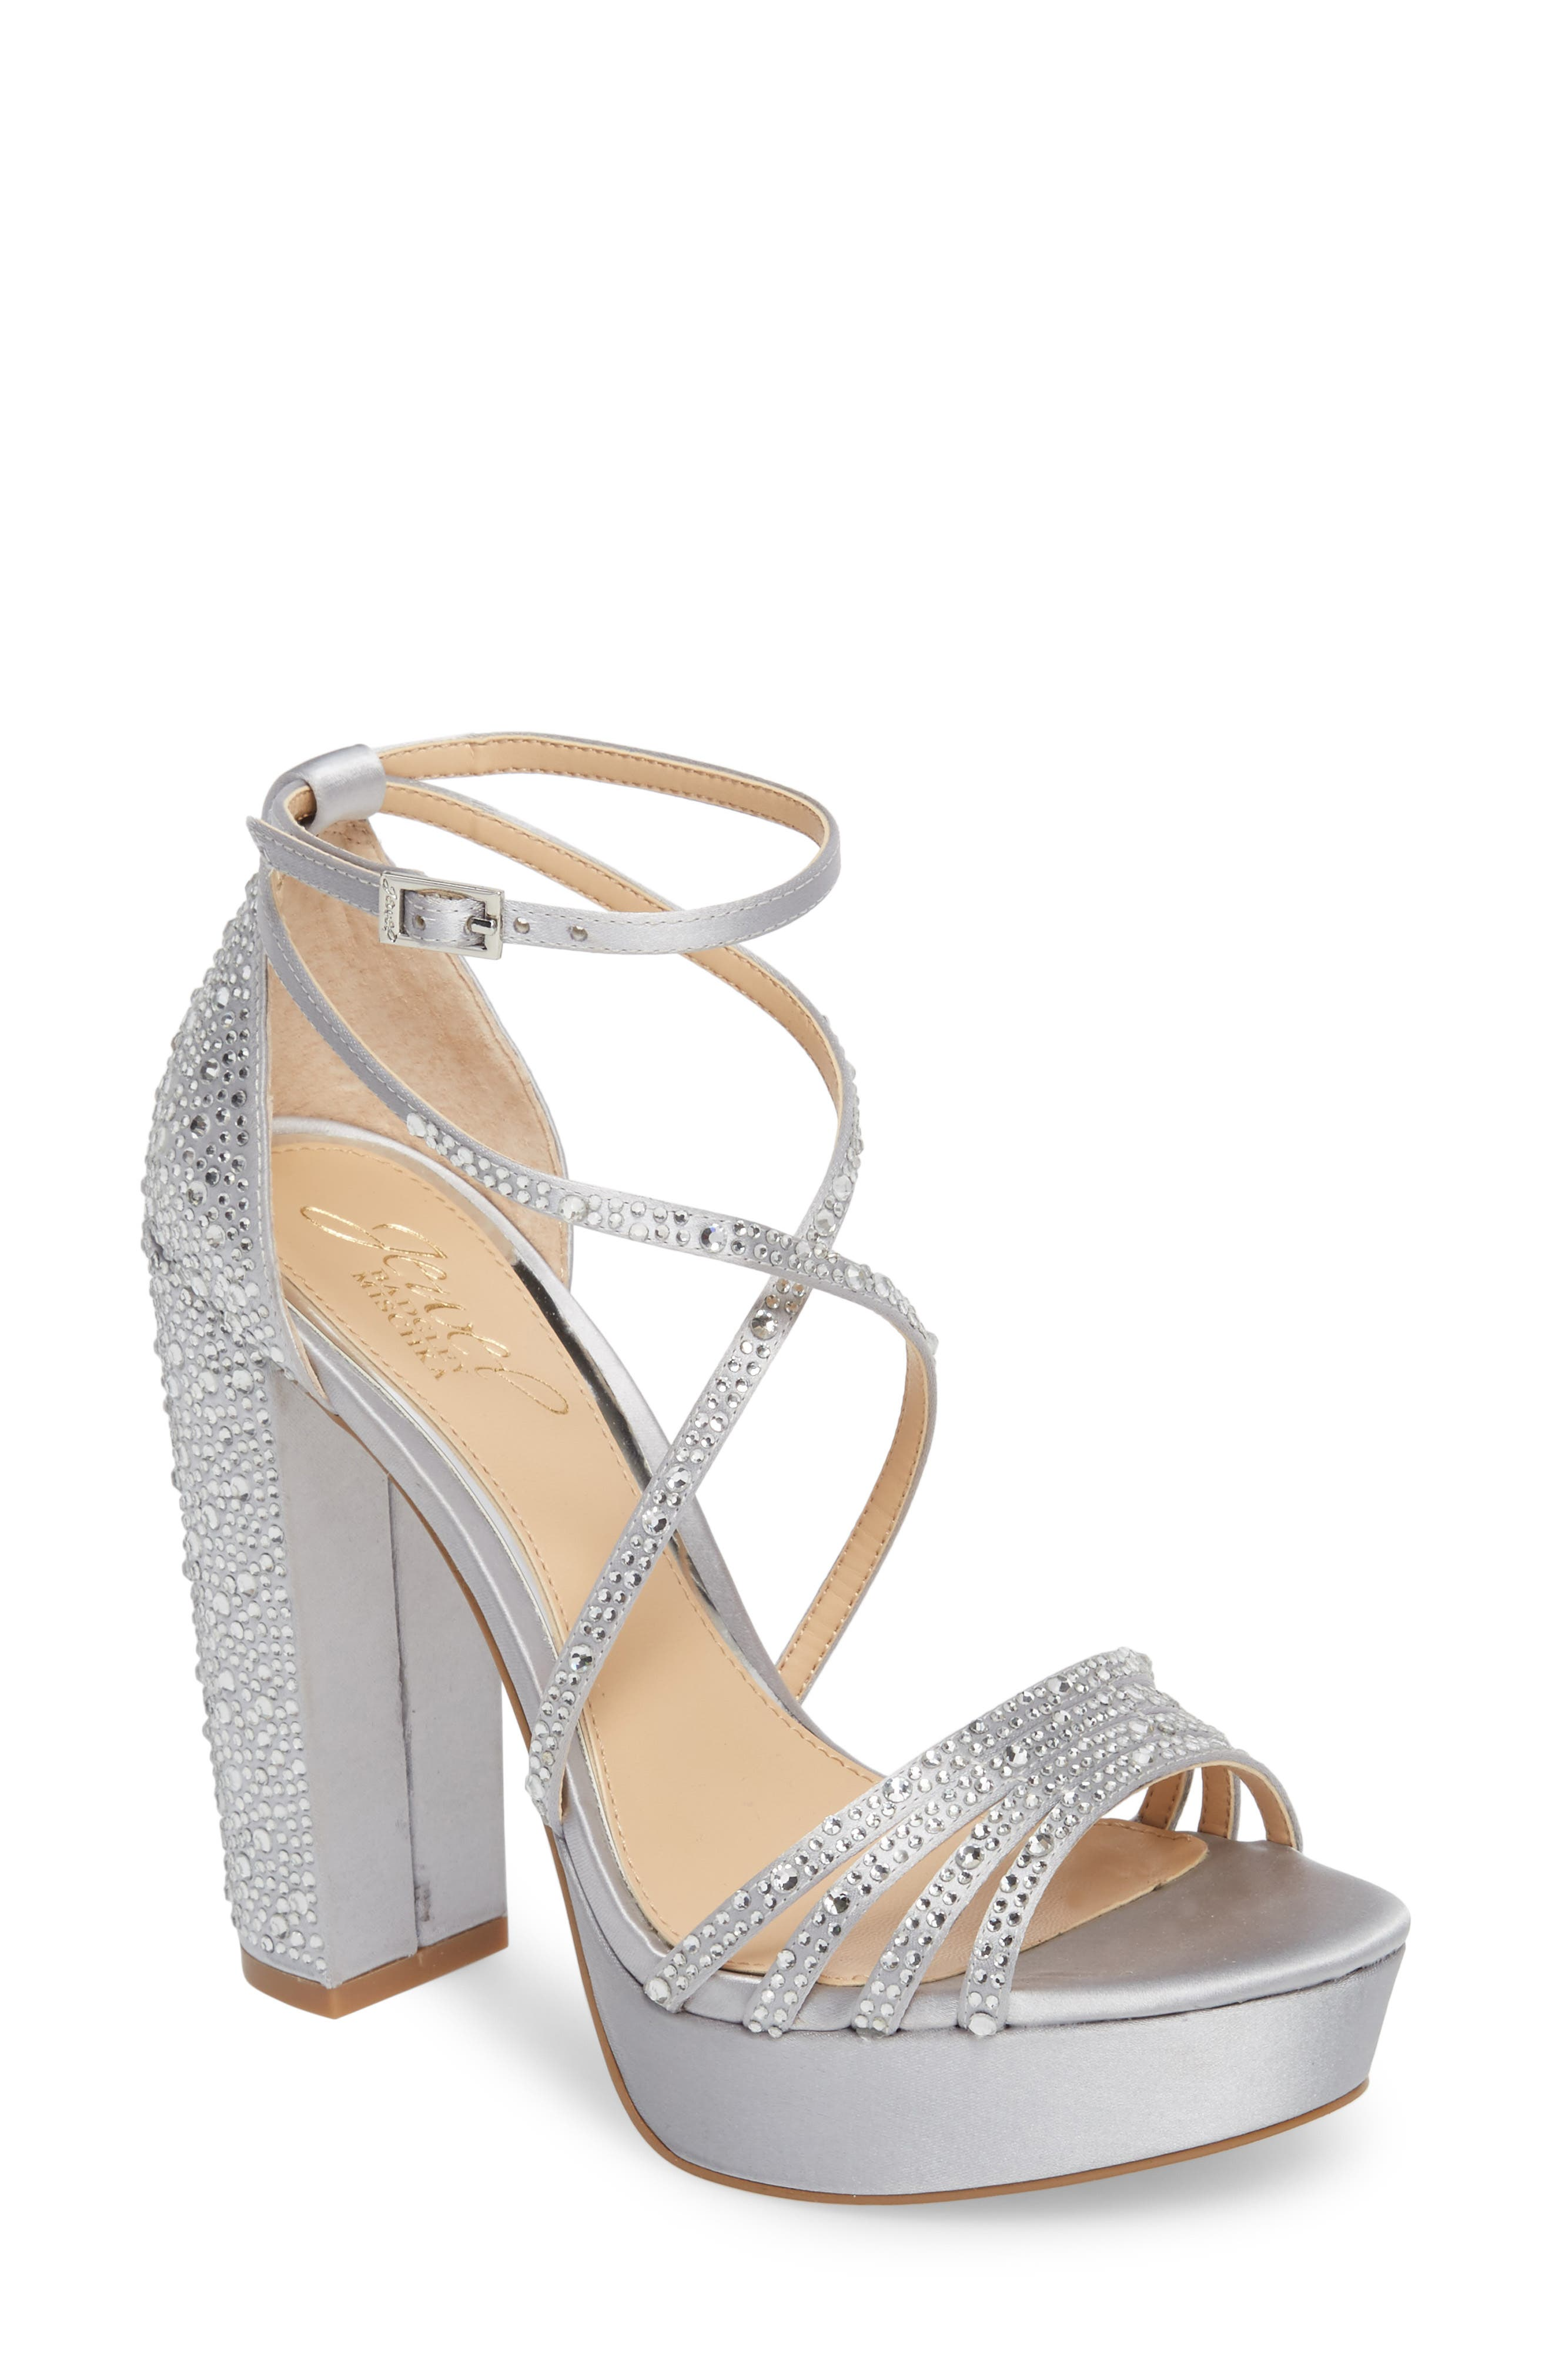 Tarah Crystal Embellished Platform Sandal,                             Main thumbnail 2, color,